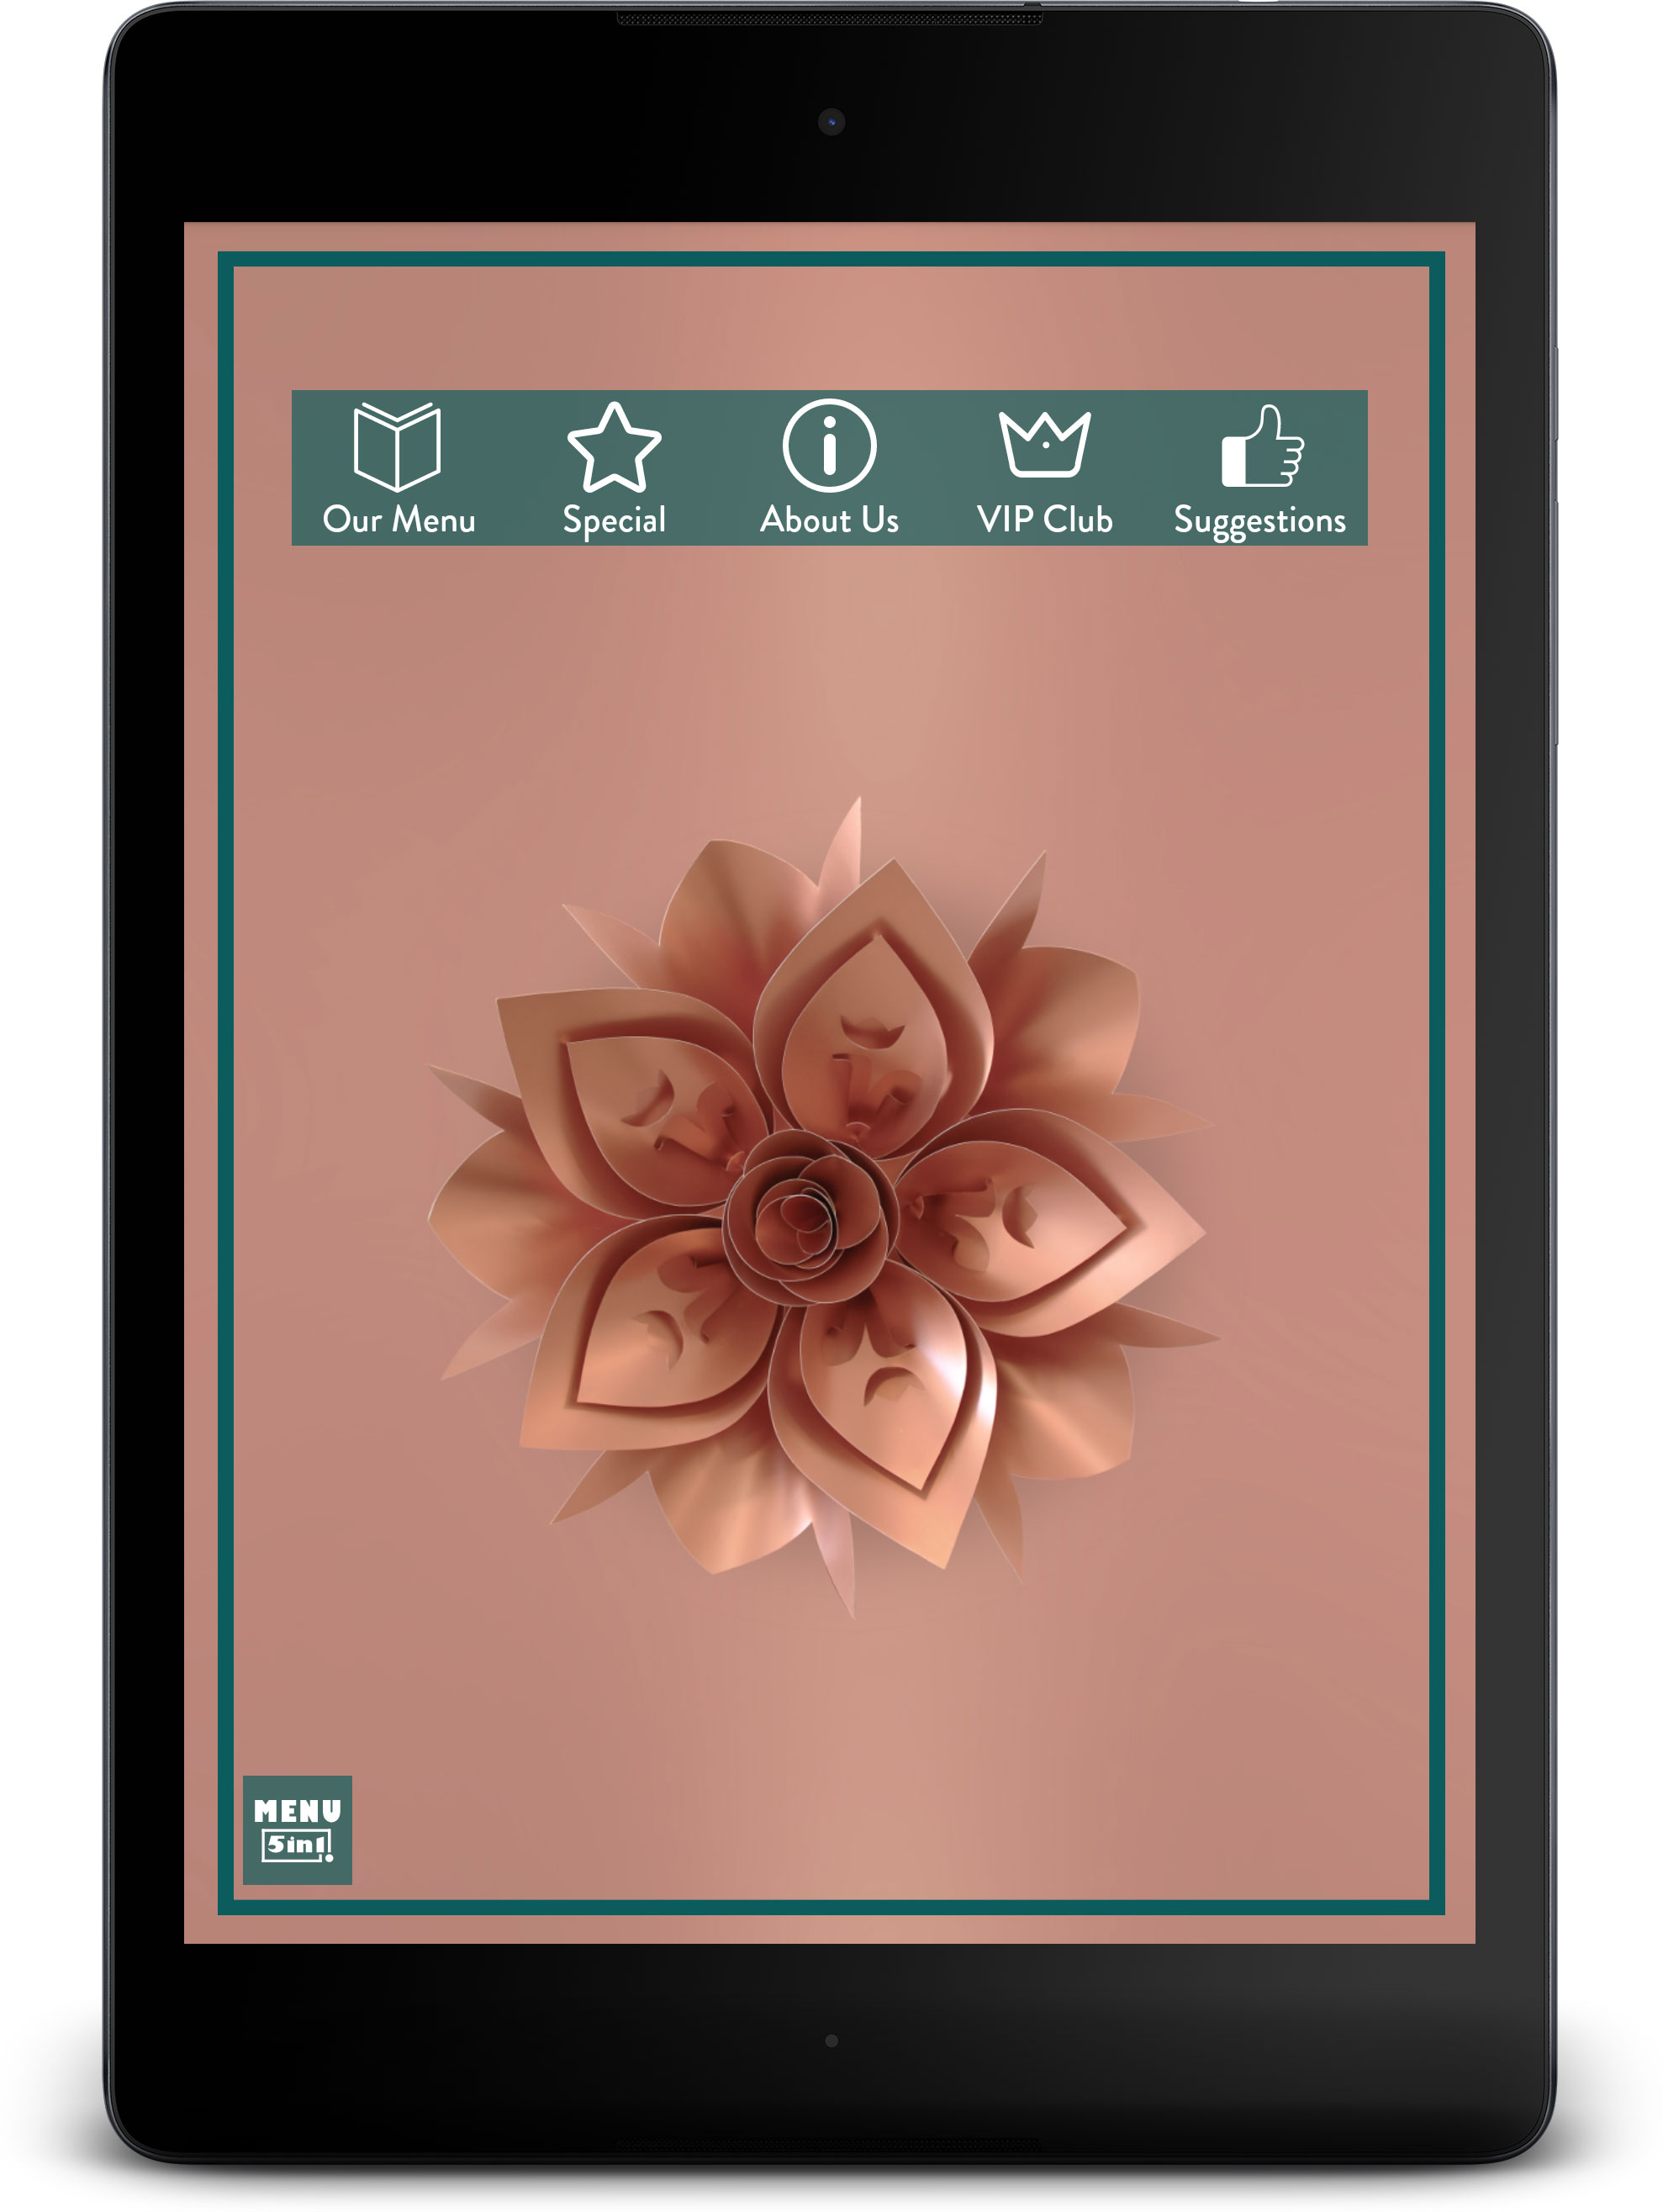 Cham Solutions & Programs - Menu 5in1 On Tablet Design Options